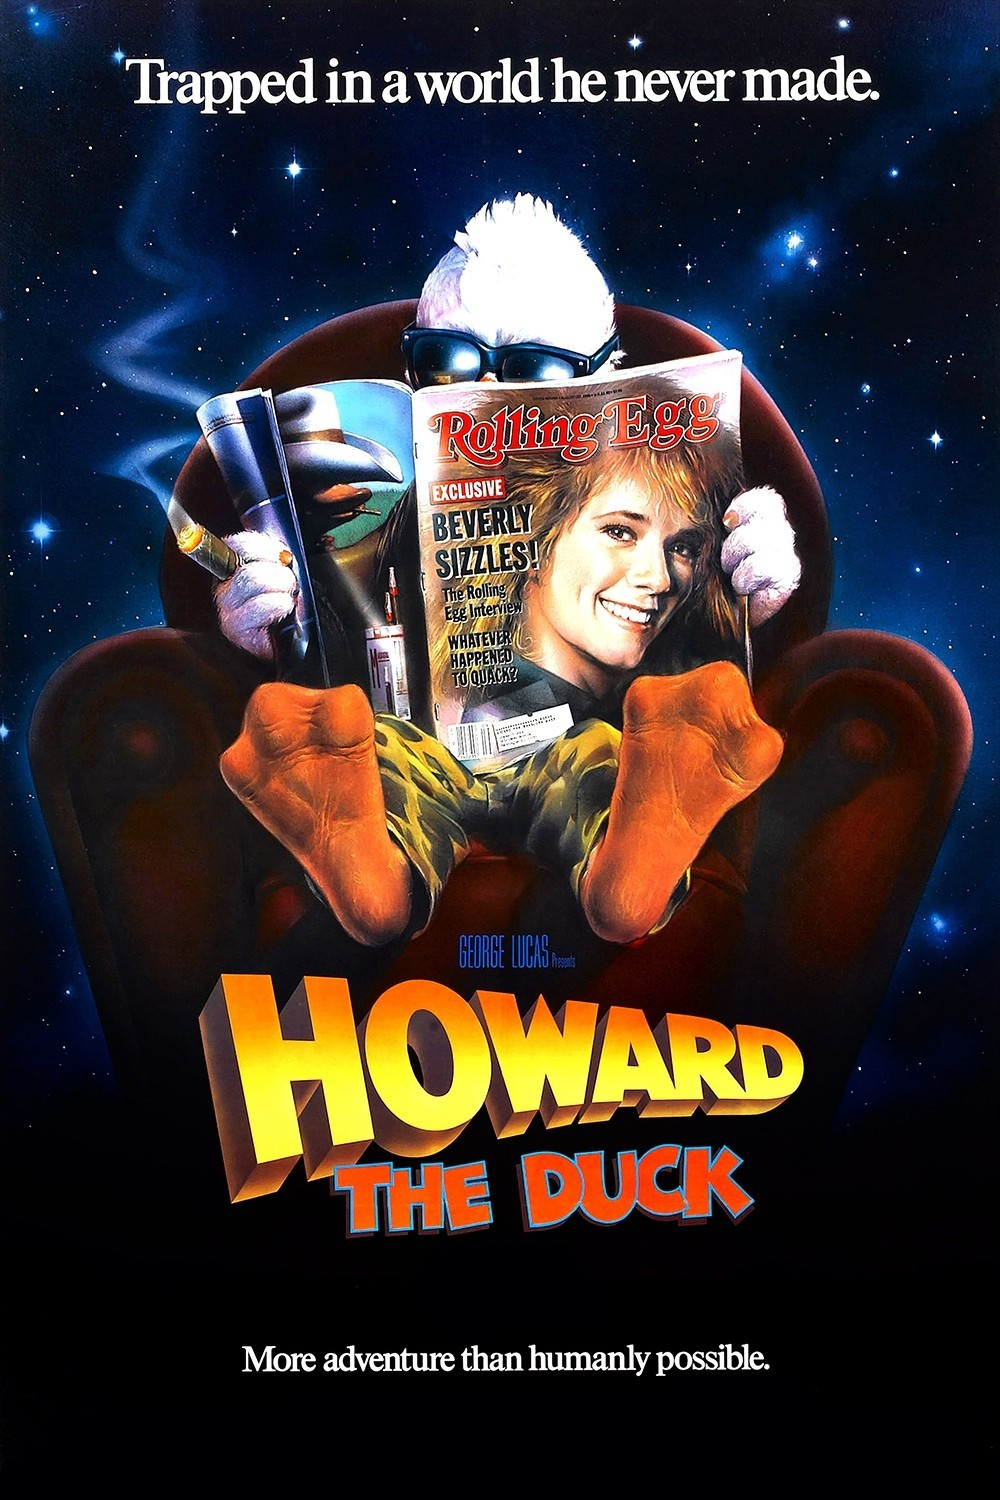 howard the duck - photo #10